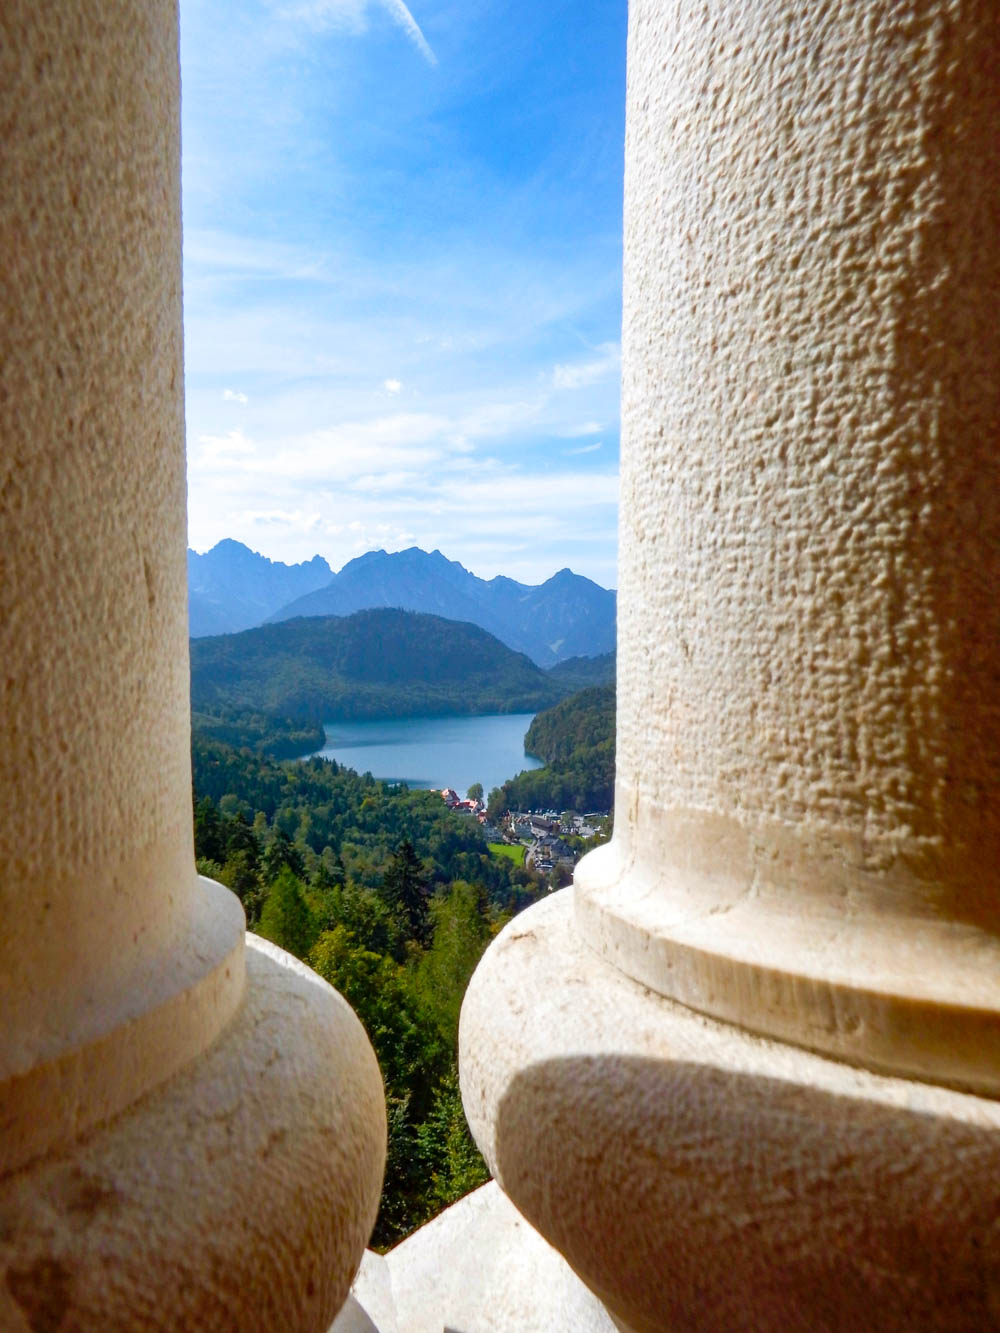 lake view | 10 Crucial Tips to Visit Neuschwanstein Castle Skillfully and Worry-Free | Tips for visiting Neuschwanstein Castle in Bavaria, Germany | Neuschwanstein Castle tour tickets